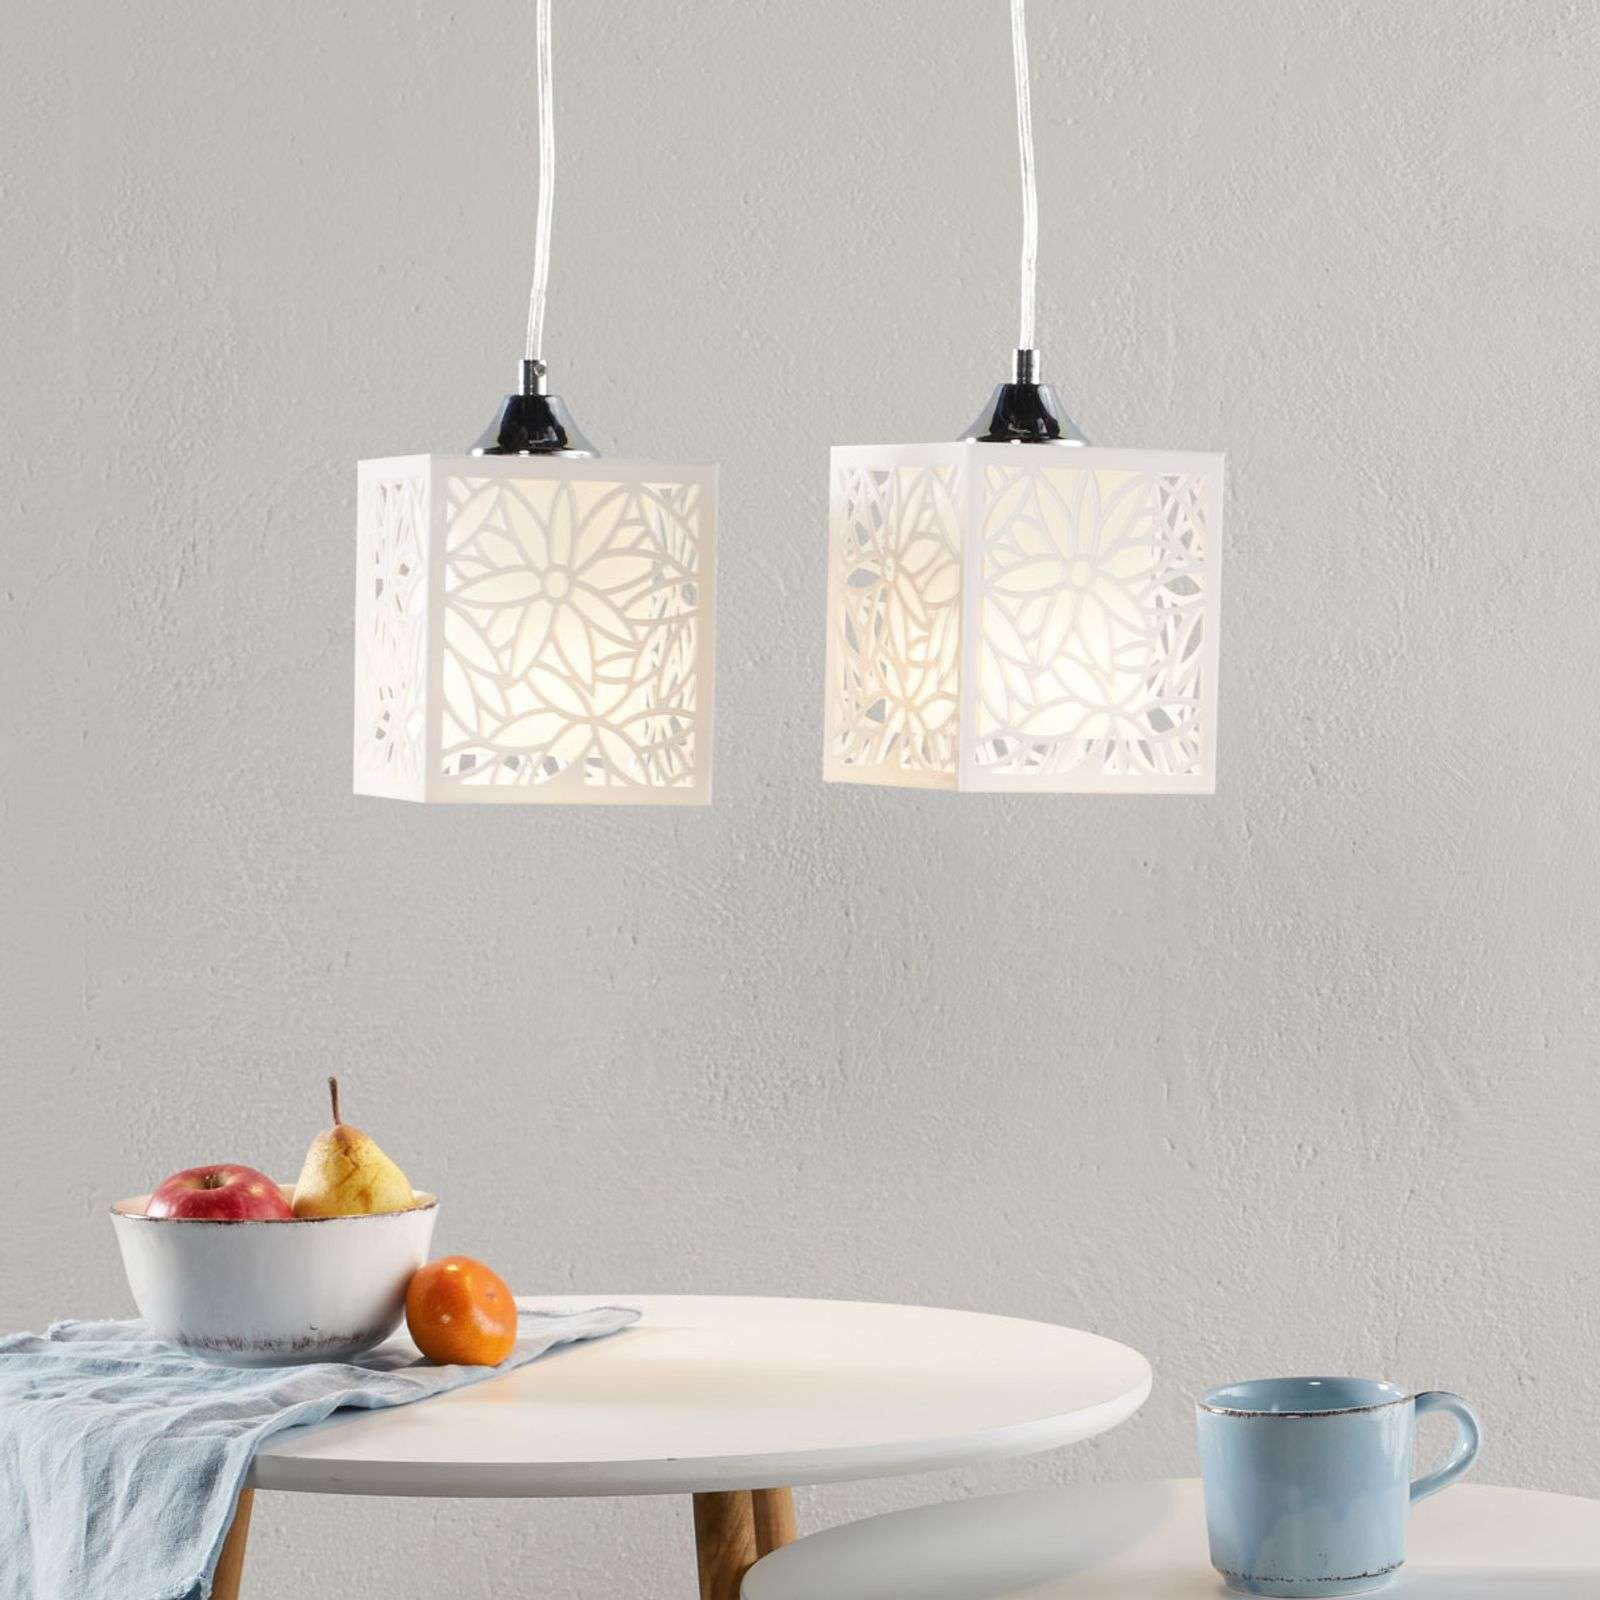 Suspension Anika moderne, 2 lampes